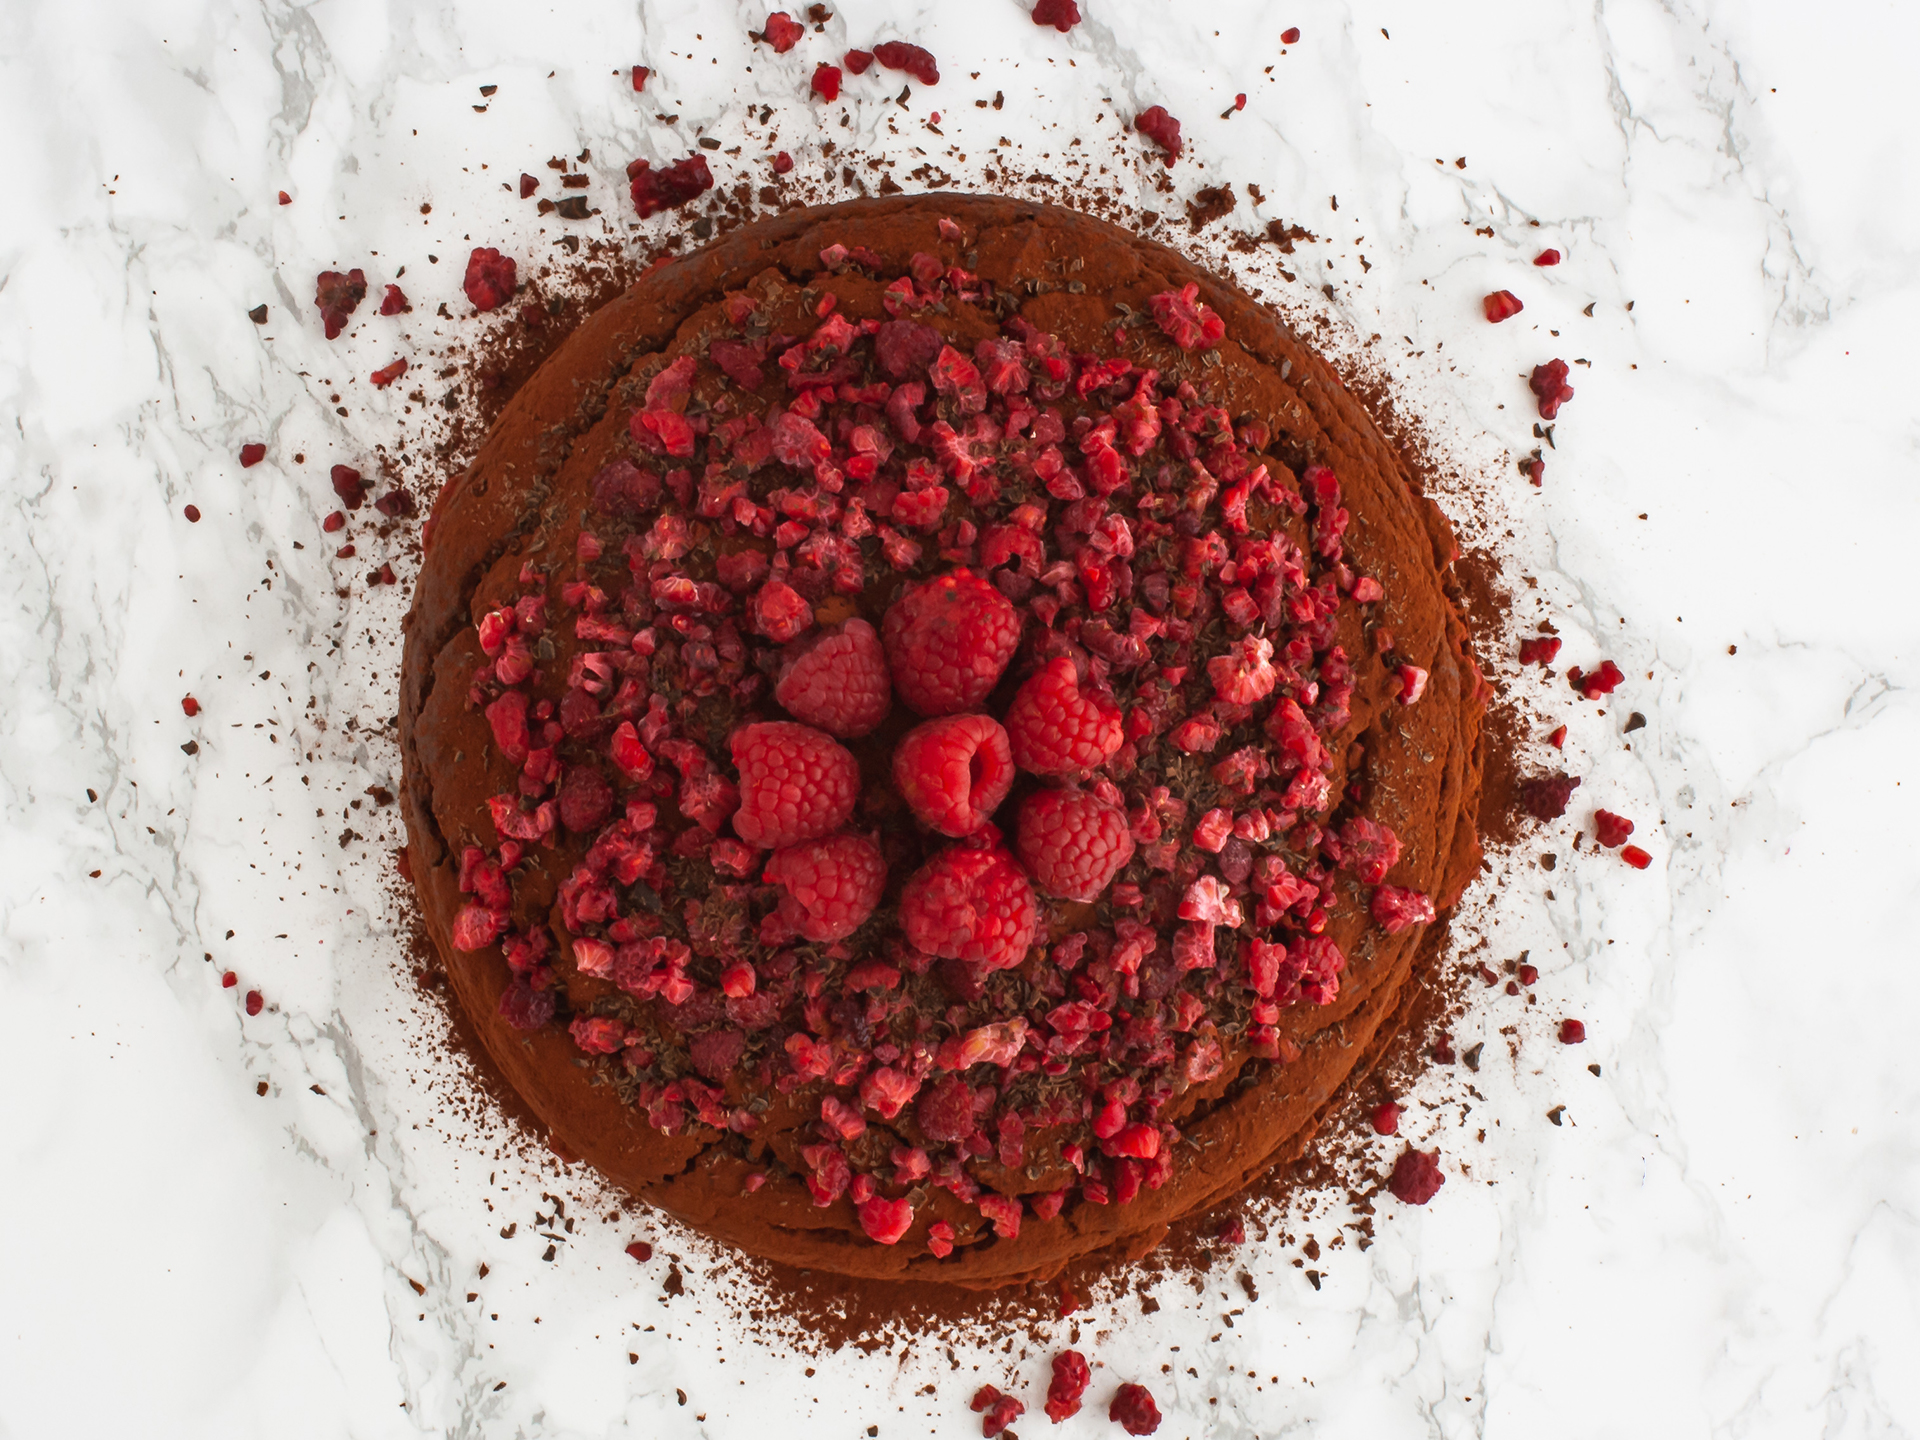 Step 5.2 of Vegan Chocolate Raspberry Cake Recipe